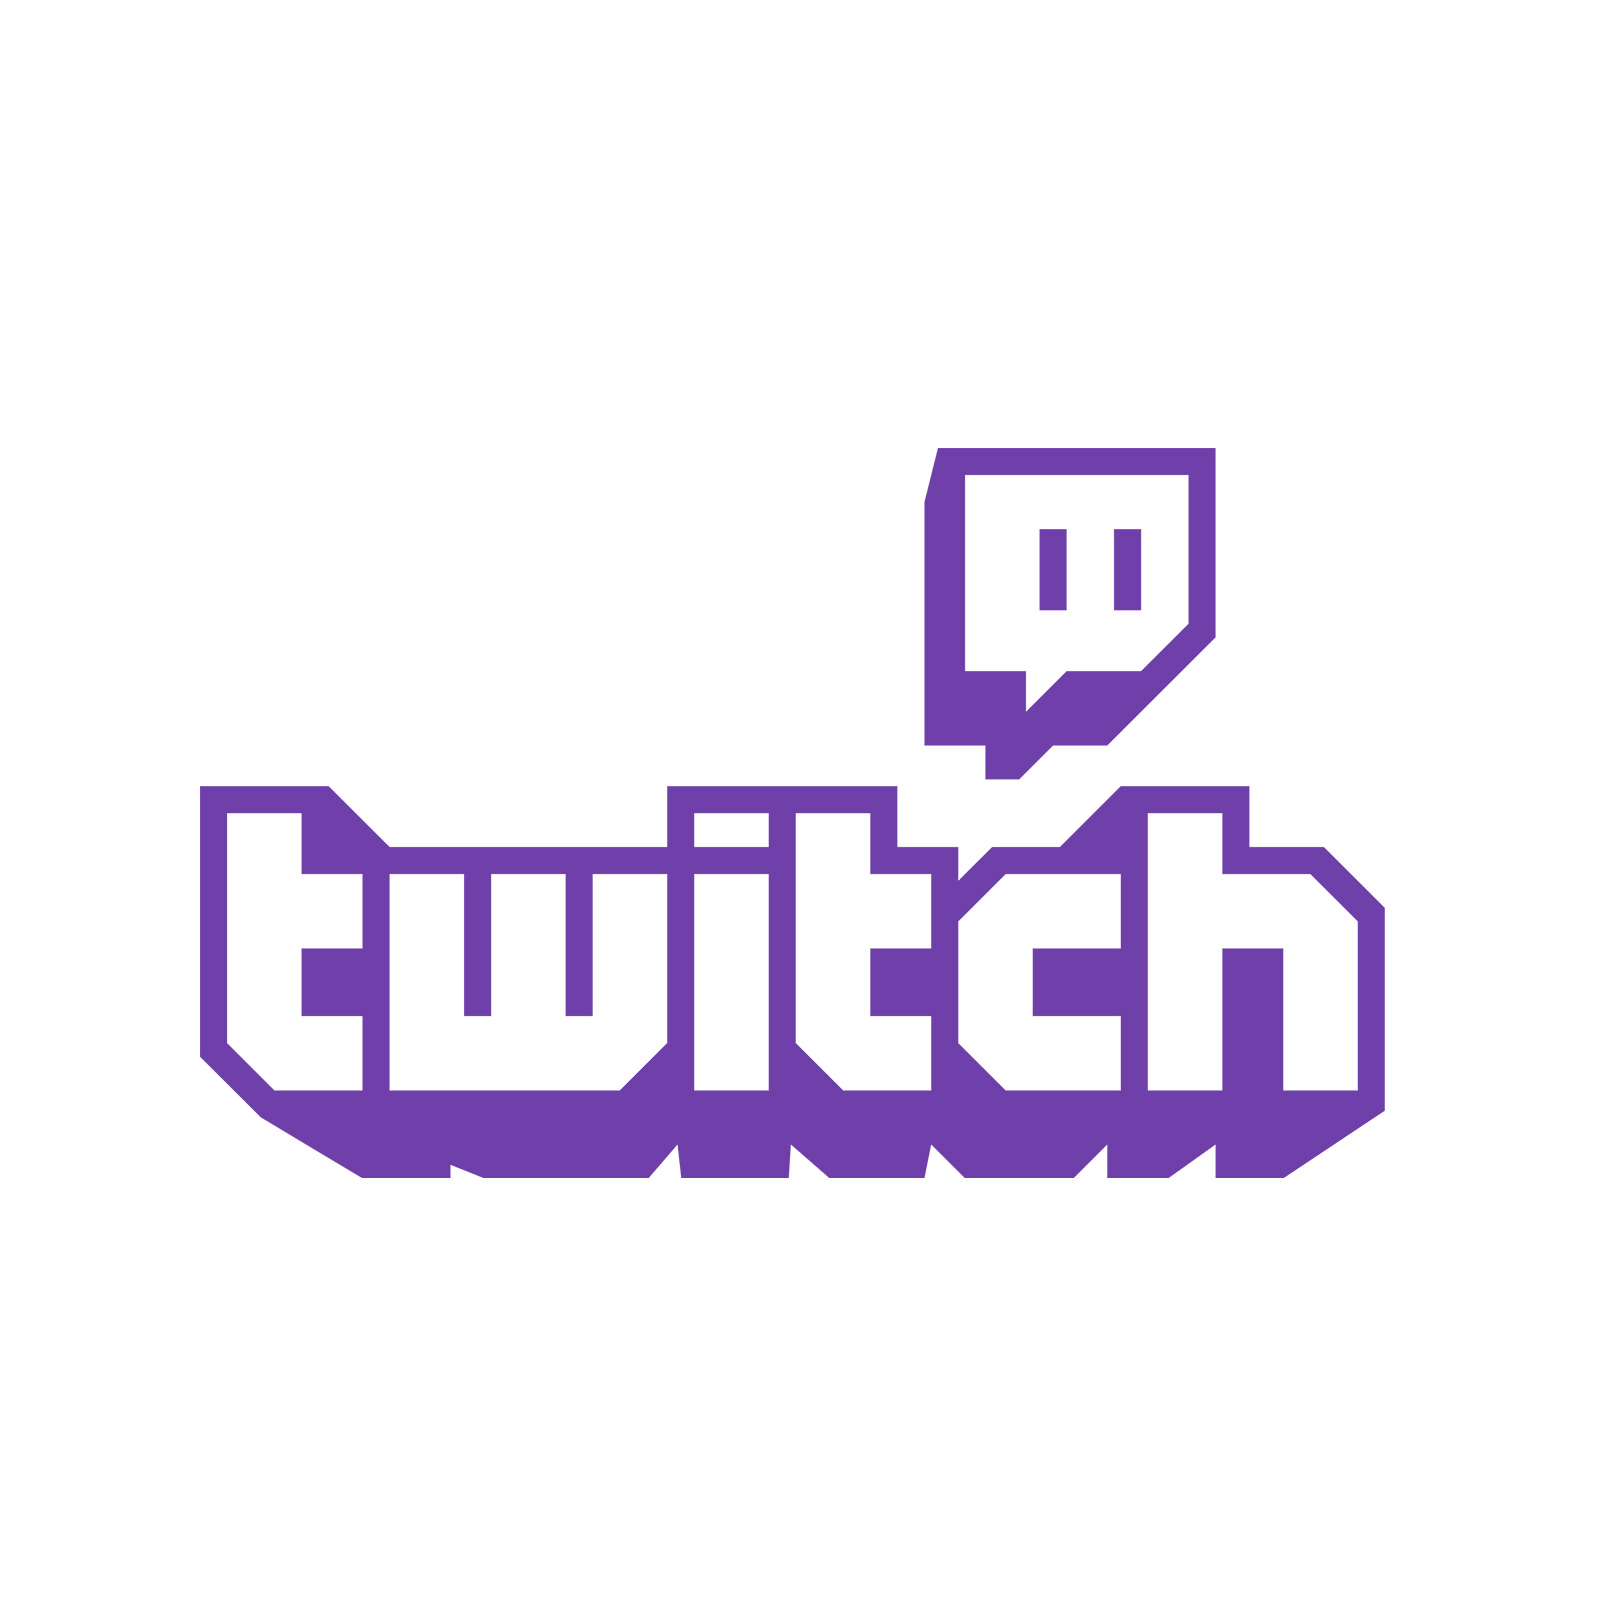 Twitch is a live streaming video platform owned by Twitch Interactive, a subsidiary of Amazon.